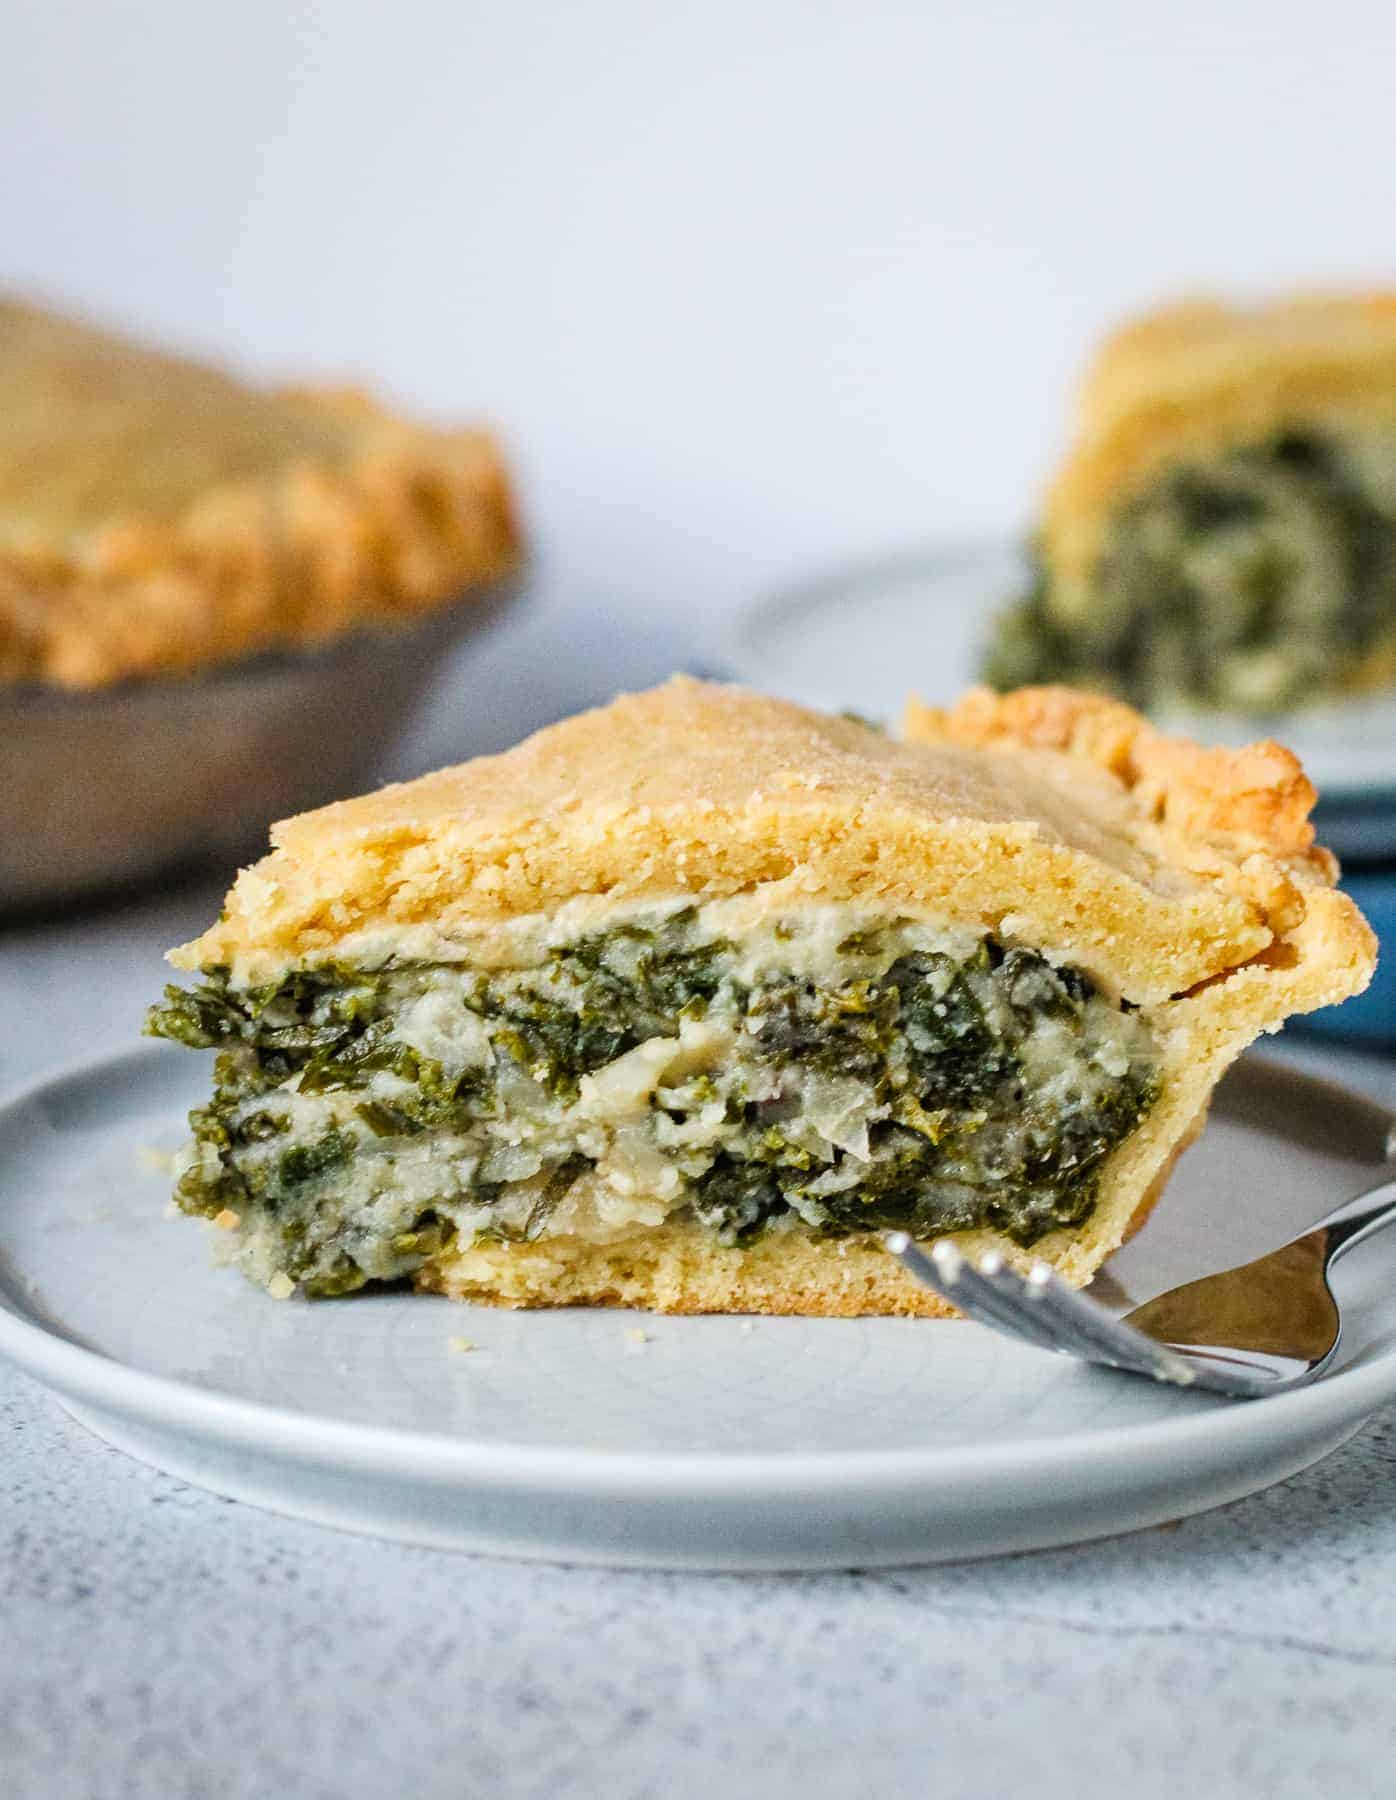 Kale pie on a plate with a fork